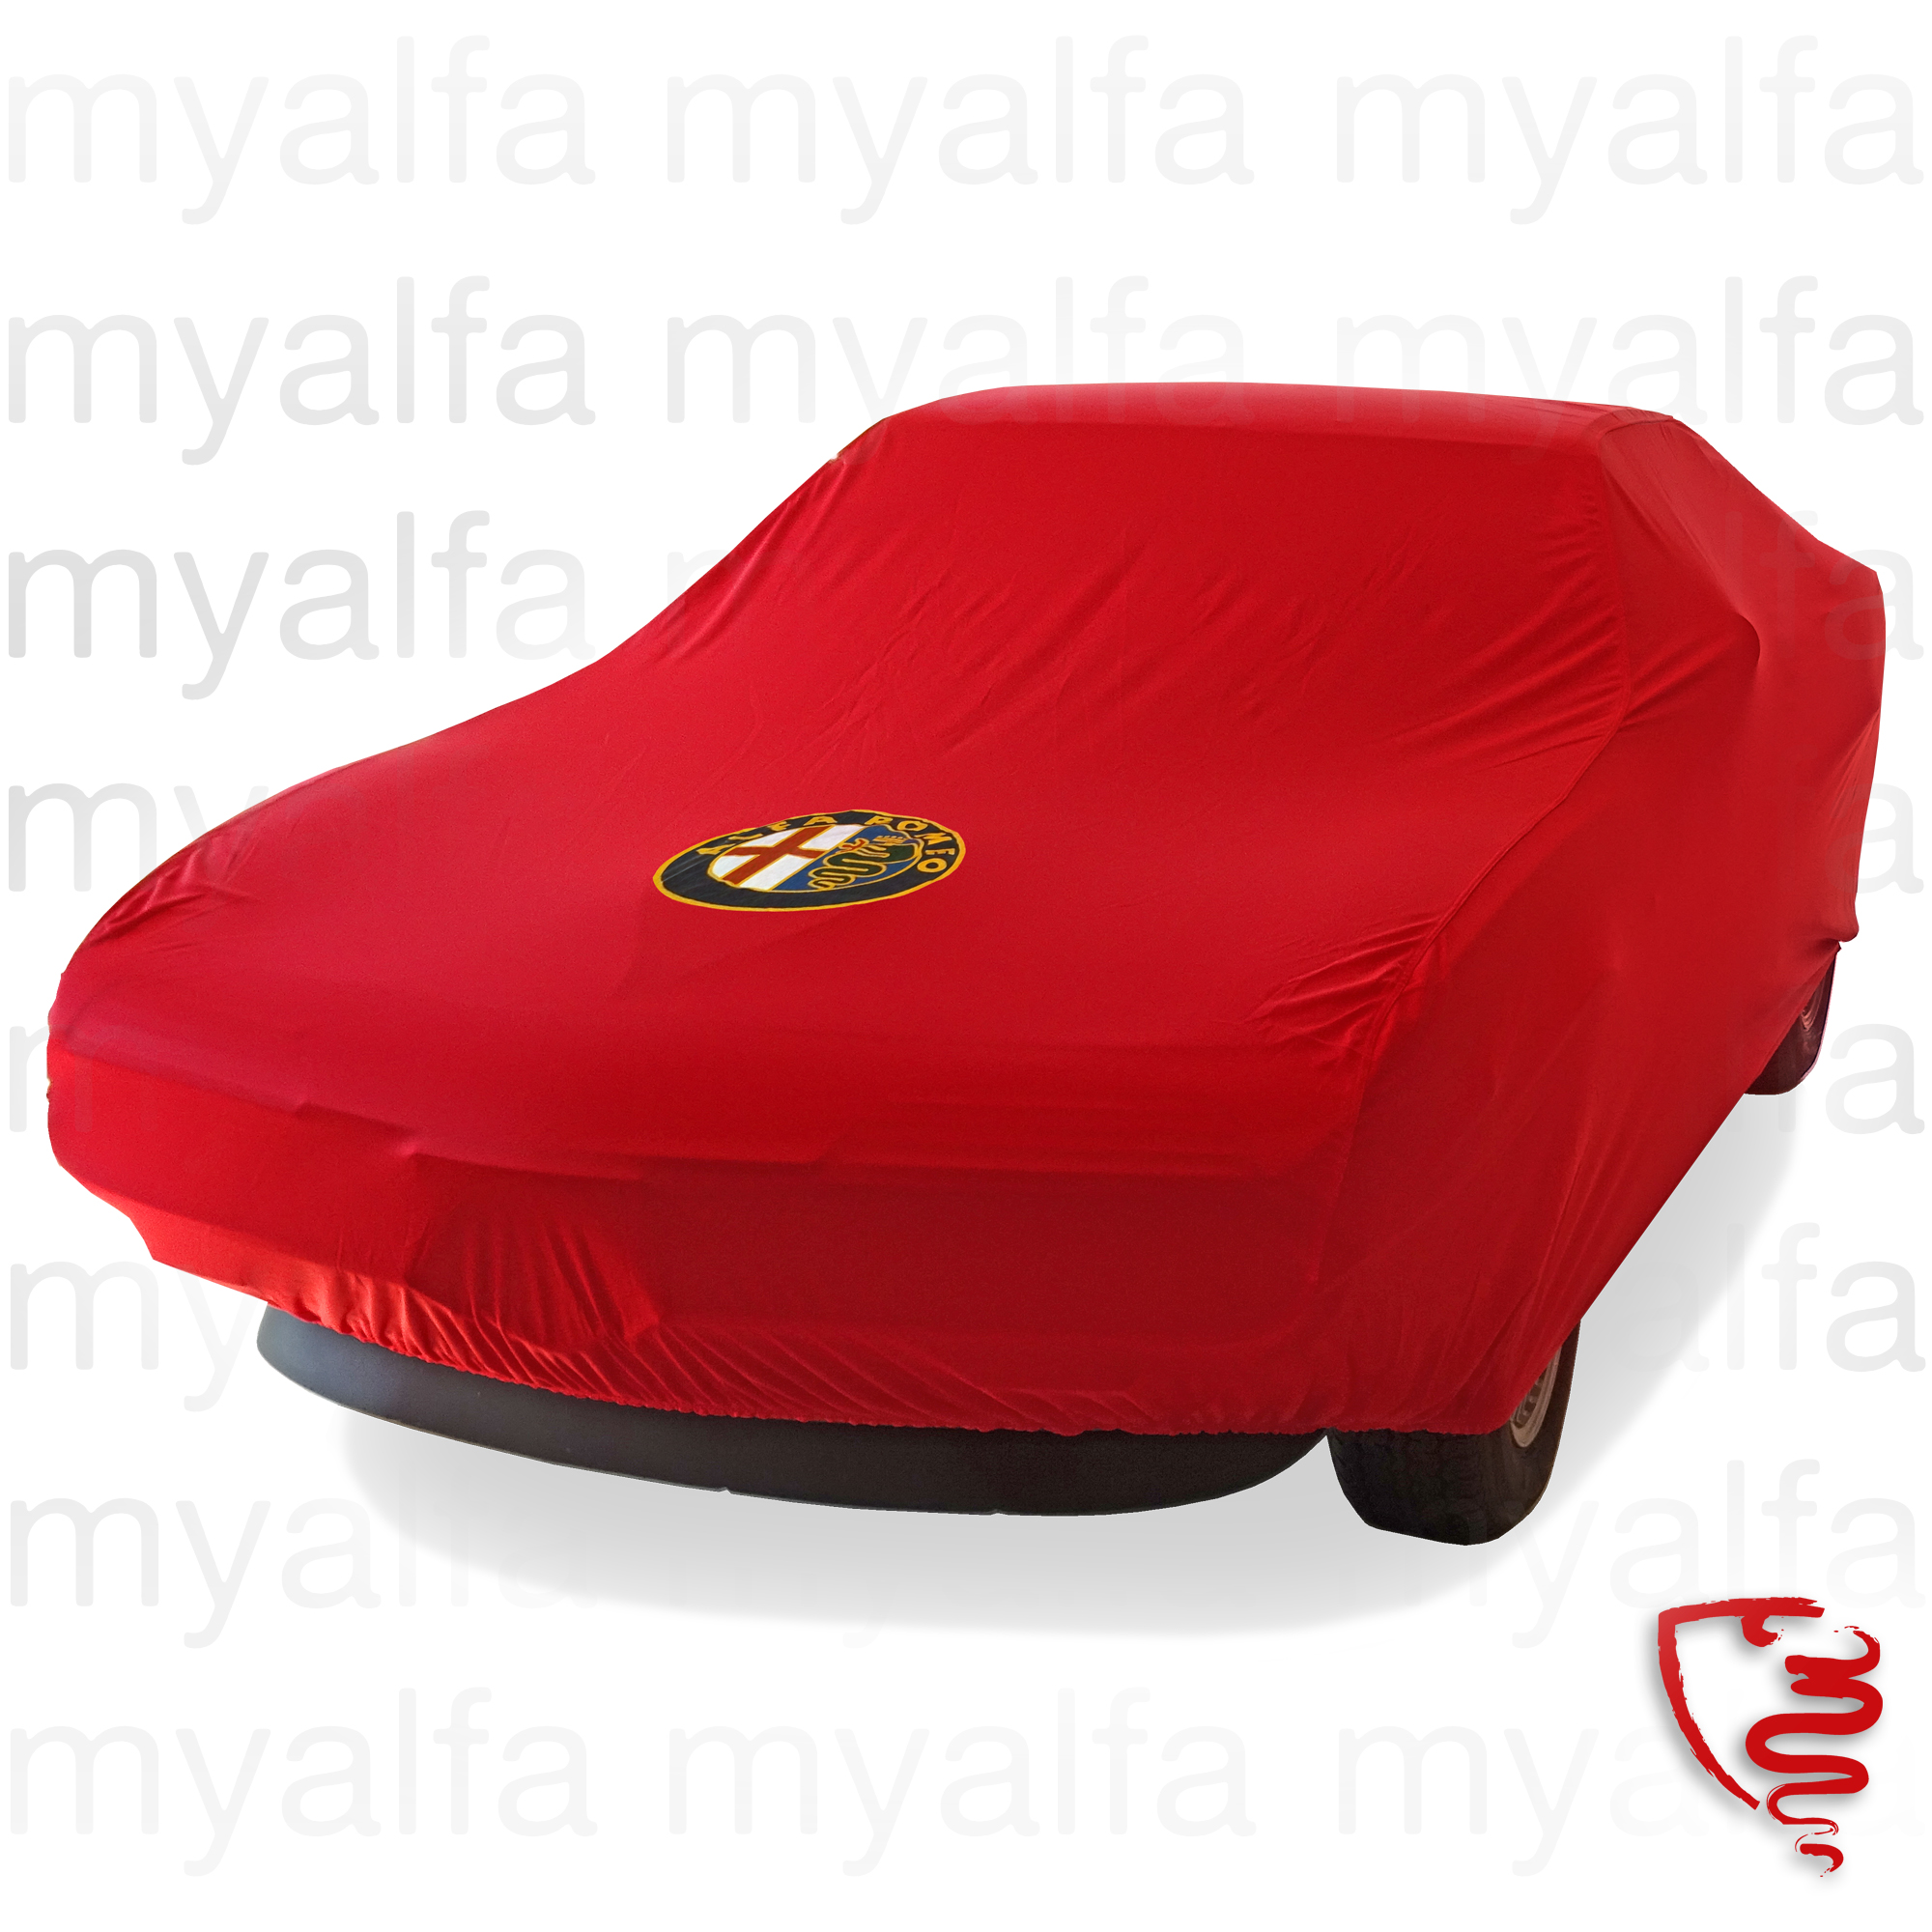 Cover cover p / Gt Montreal c / Logo AR and Red bag for 105/115, Accessories, Car Covers